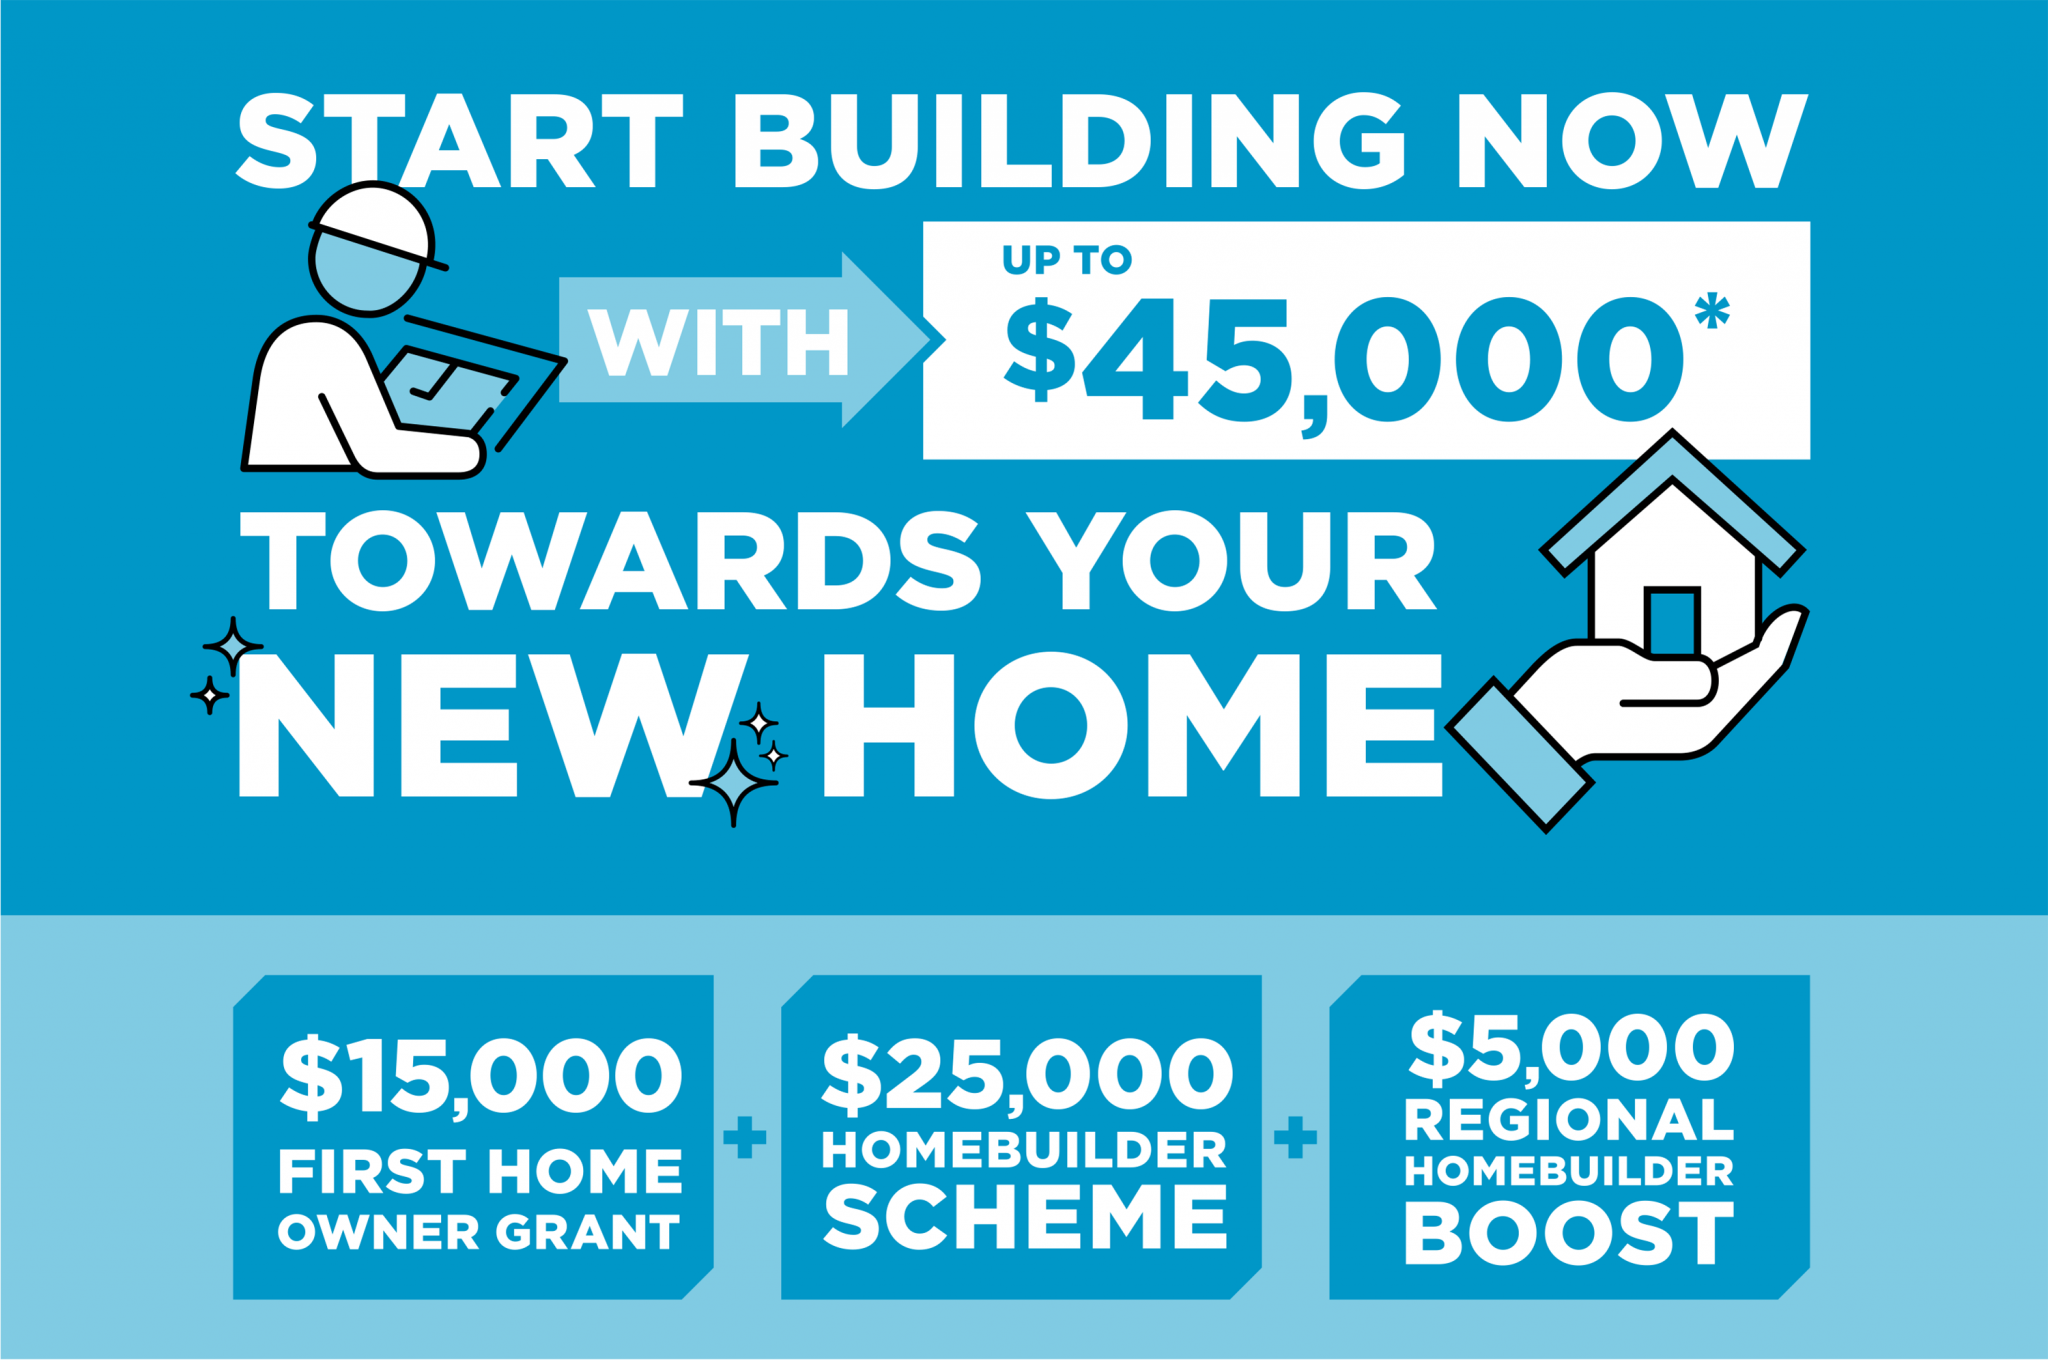 Start building no with up to $45,000* towards your new home. $15,000 first home owner grant. $25,000 HomeBuilder Scheme. $5,000 Regional HomeBuilder Boose.